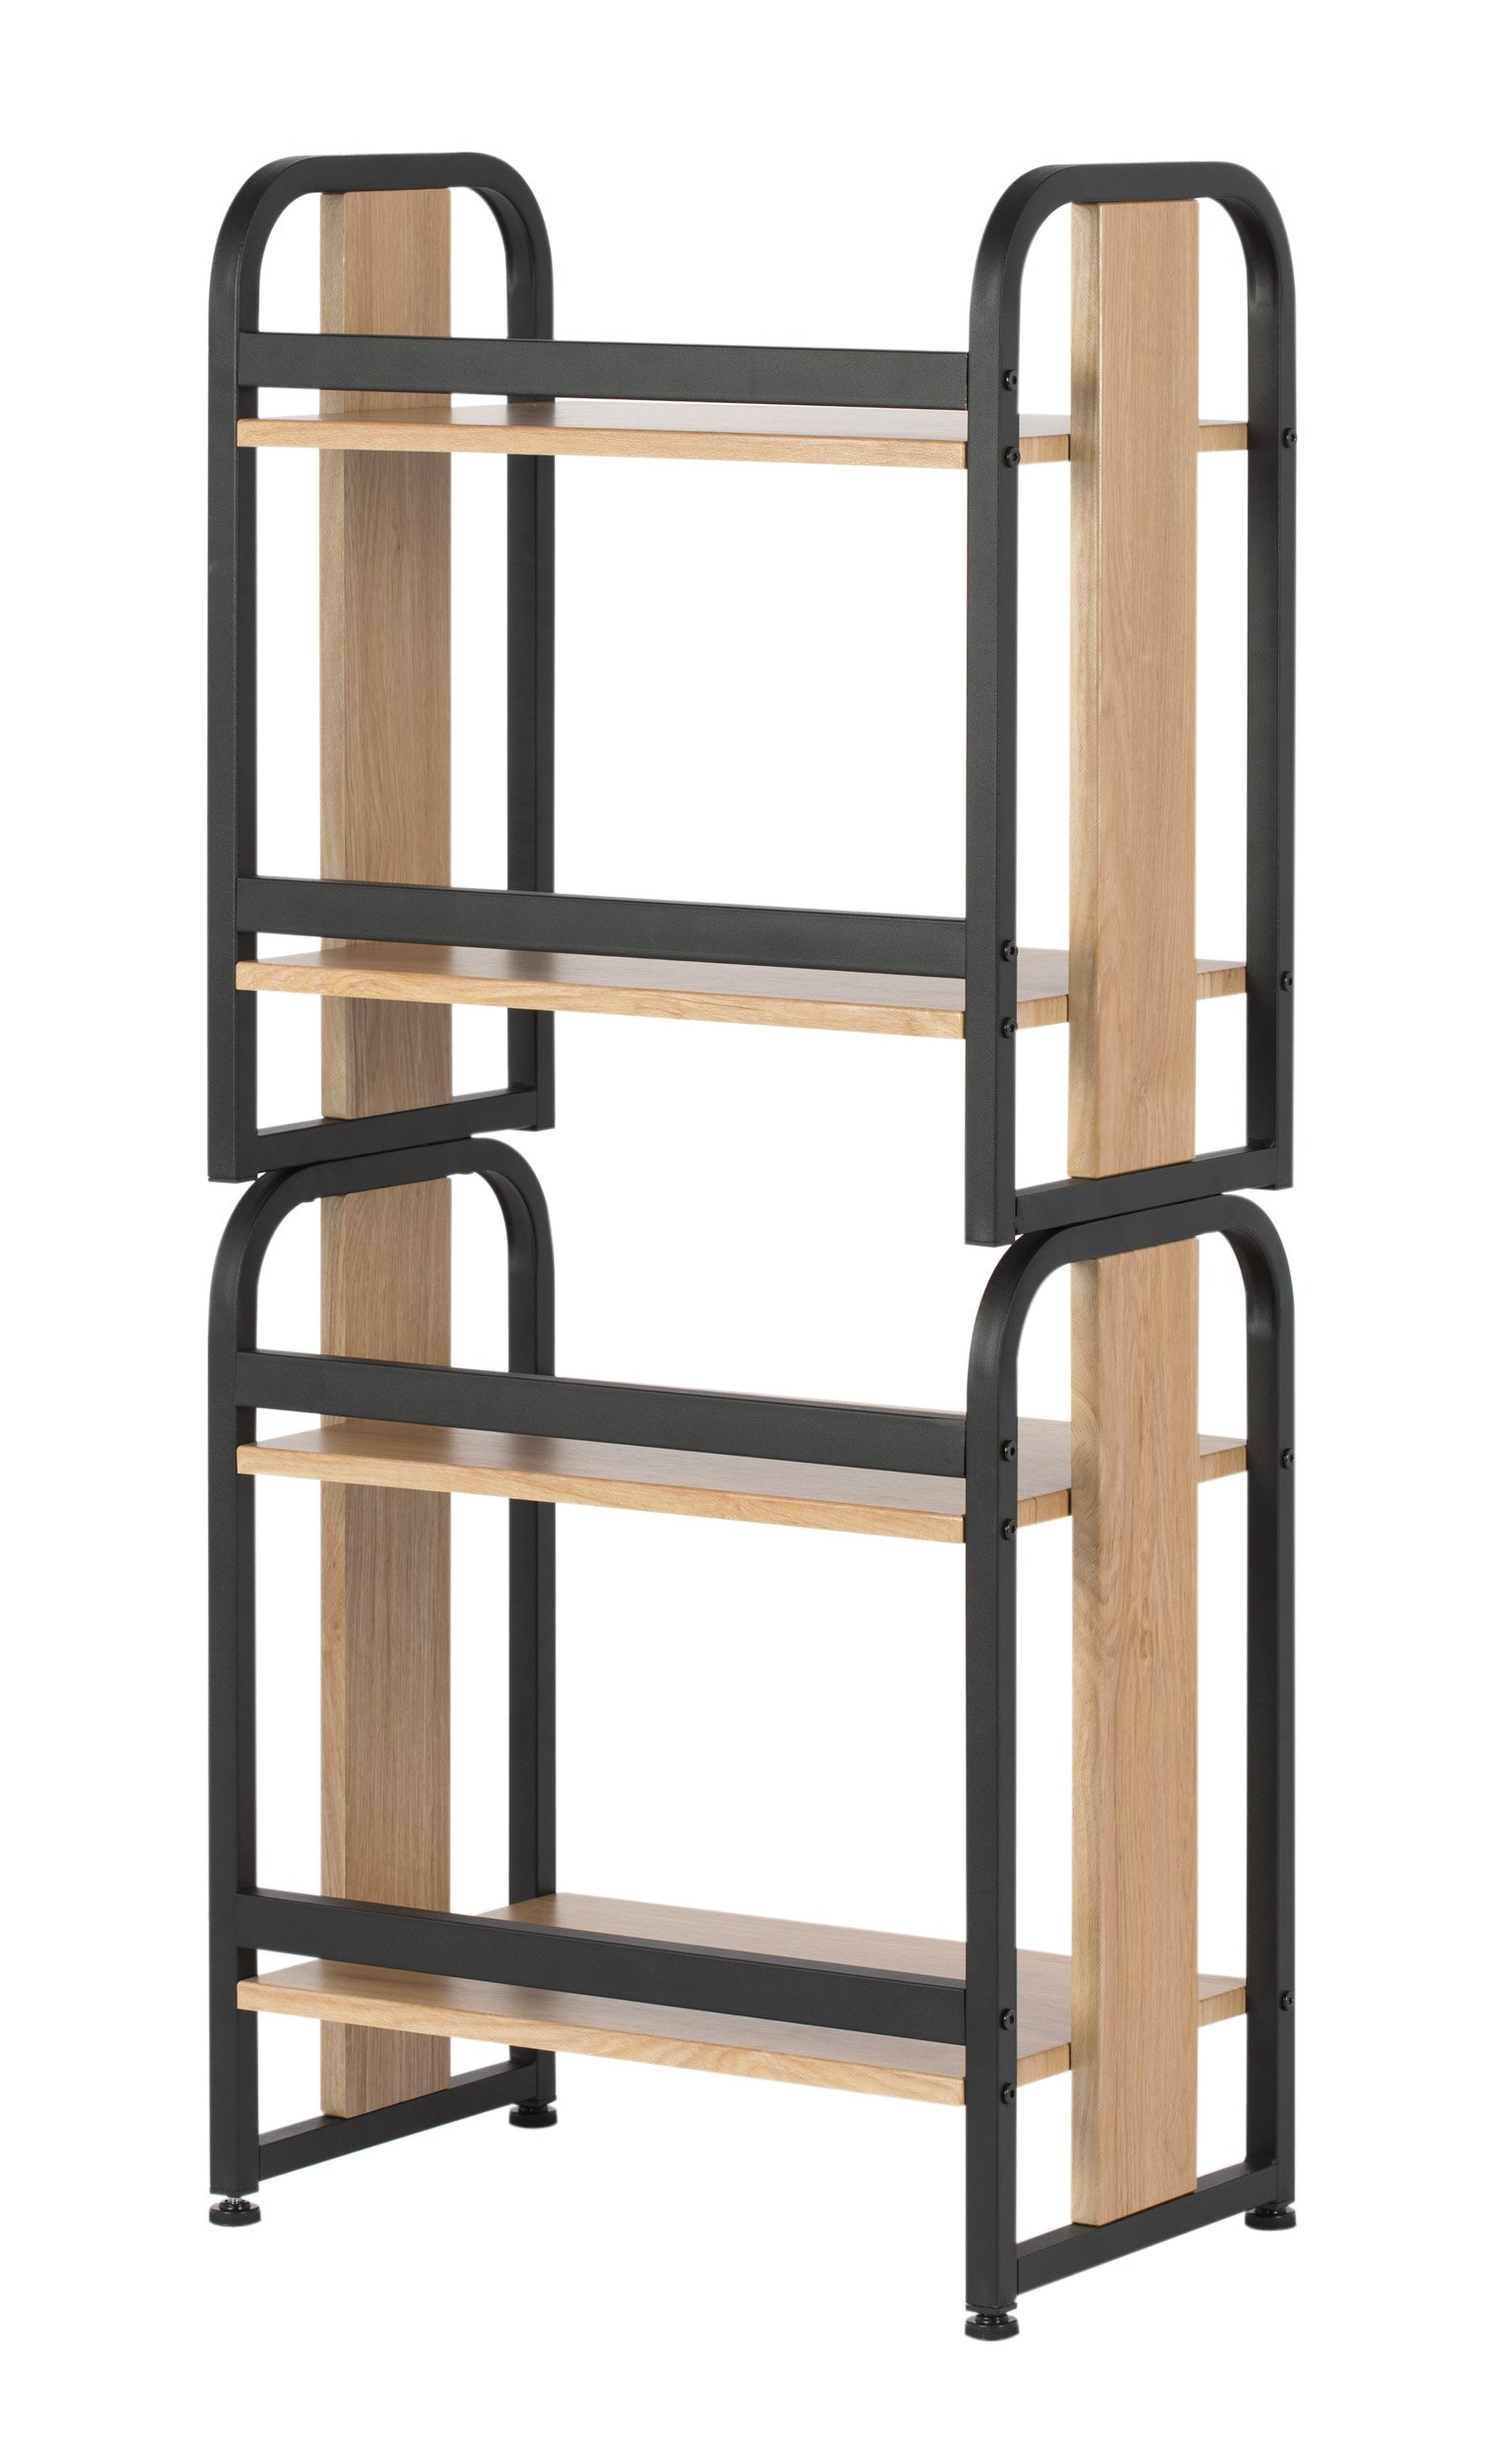 Calico Designs 51249 Modern Ashwood Stackable Bookshelf, Graphite Ashwood by Calico Designs (Image #8)